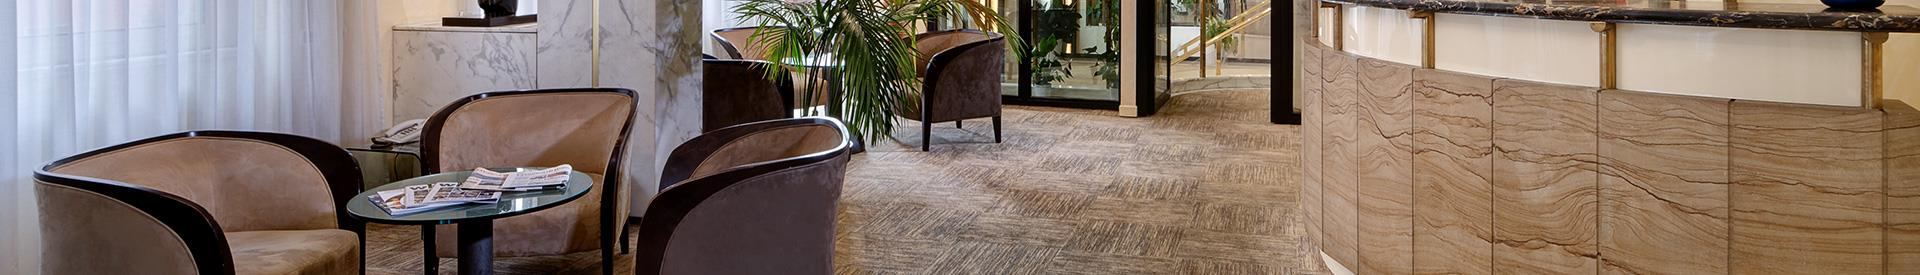 Looking for a hotel for your stay in Roma (RM)? Book/reserve at the Best Western Hotel Piccadilly